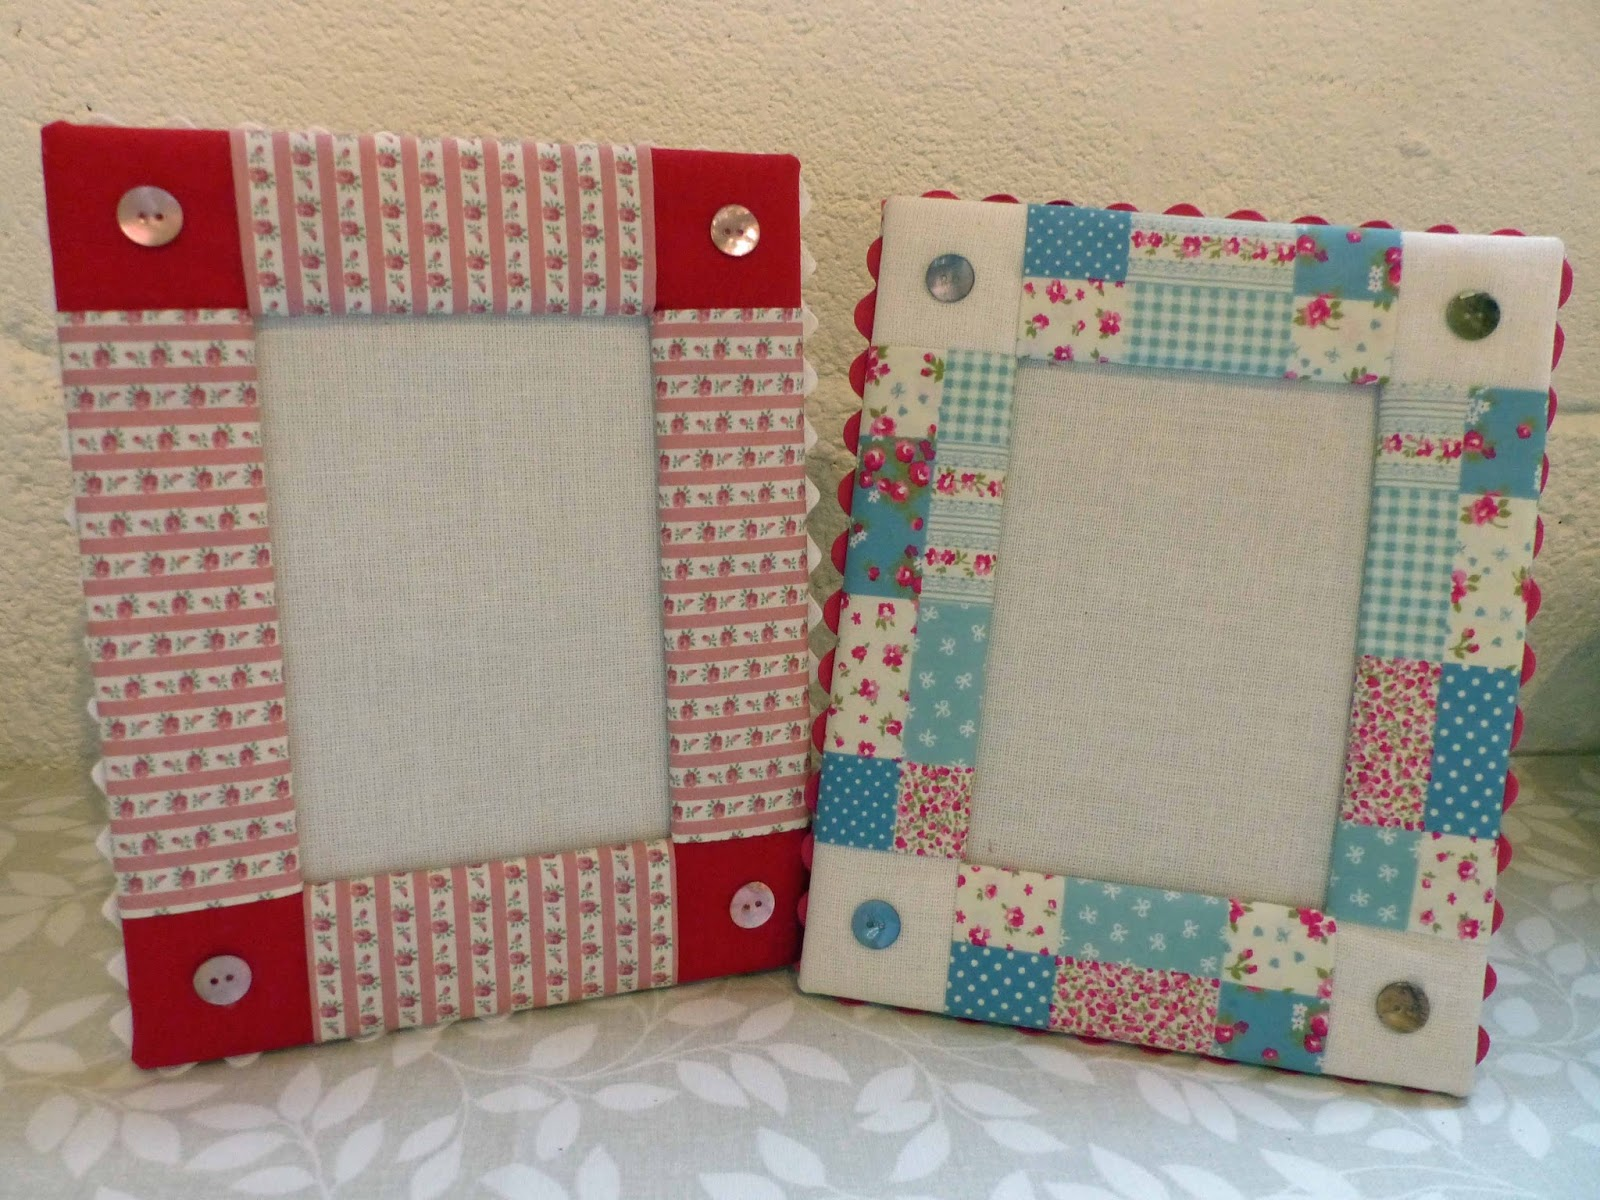 Somerset Stitch: Quick Stitch - Fabric Frame